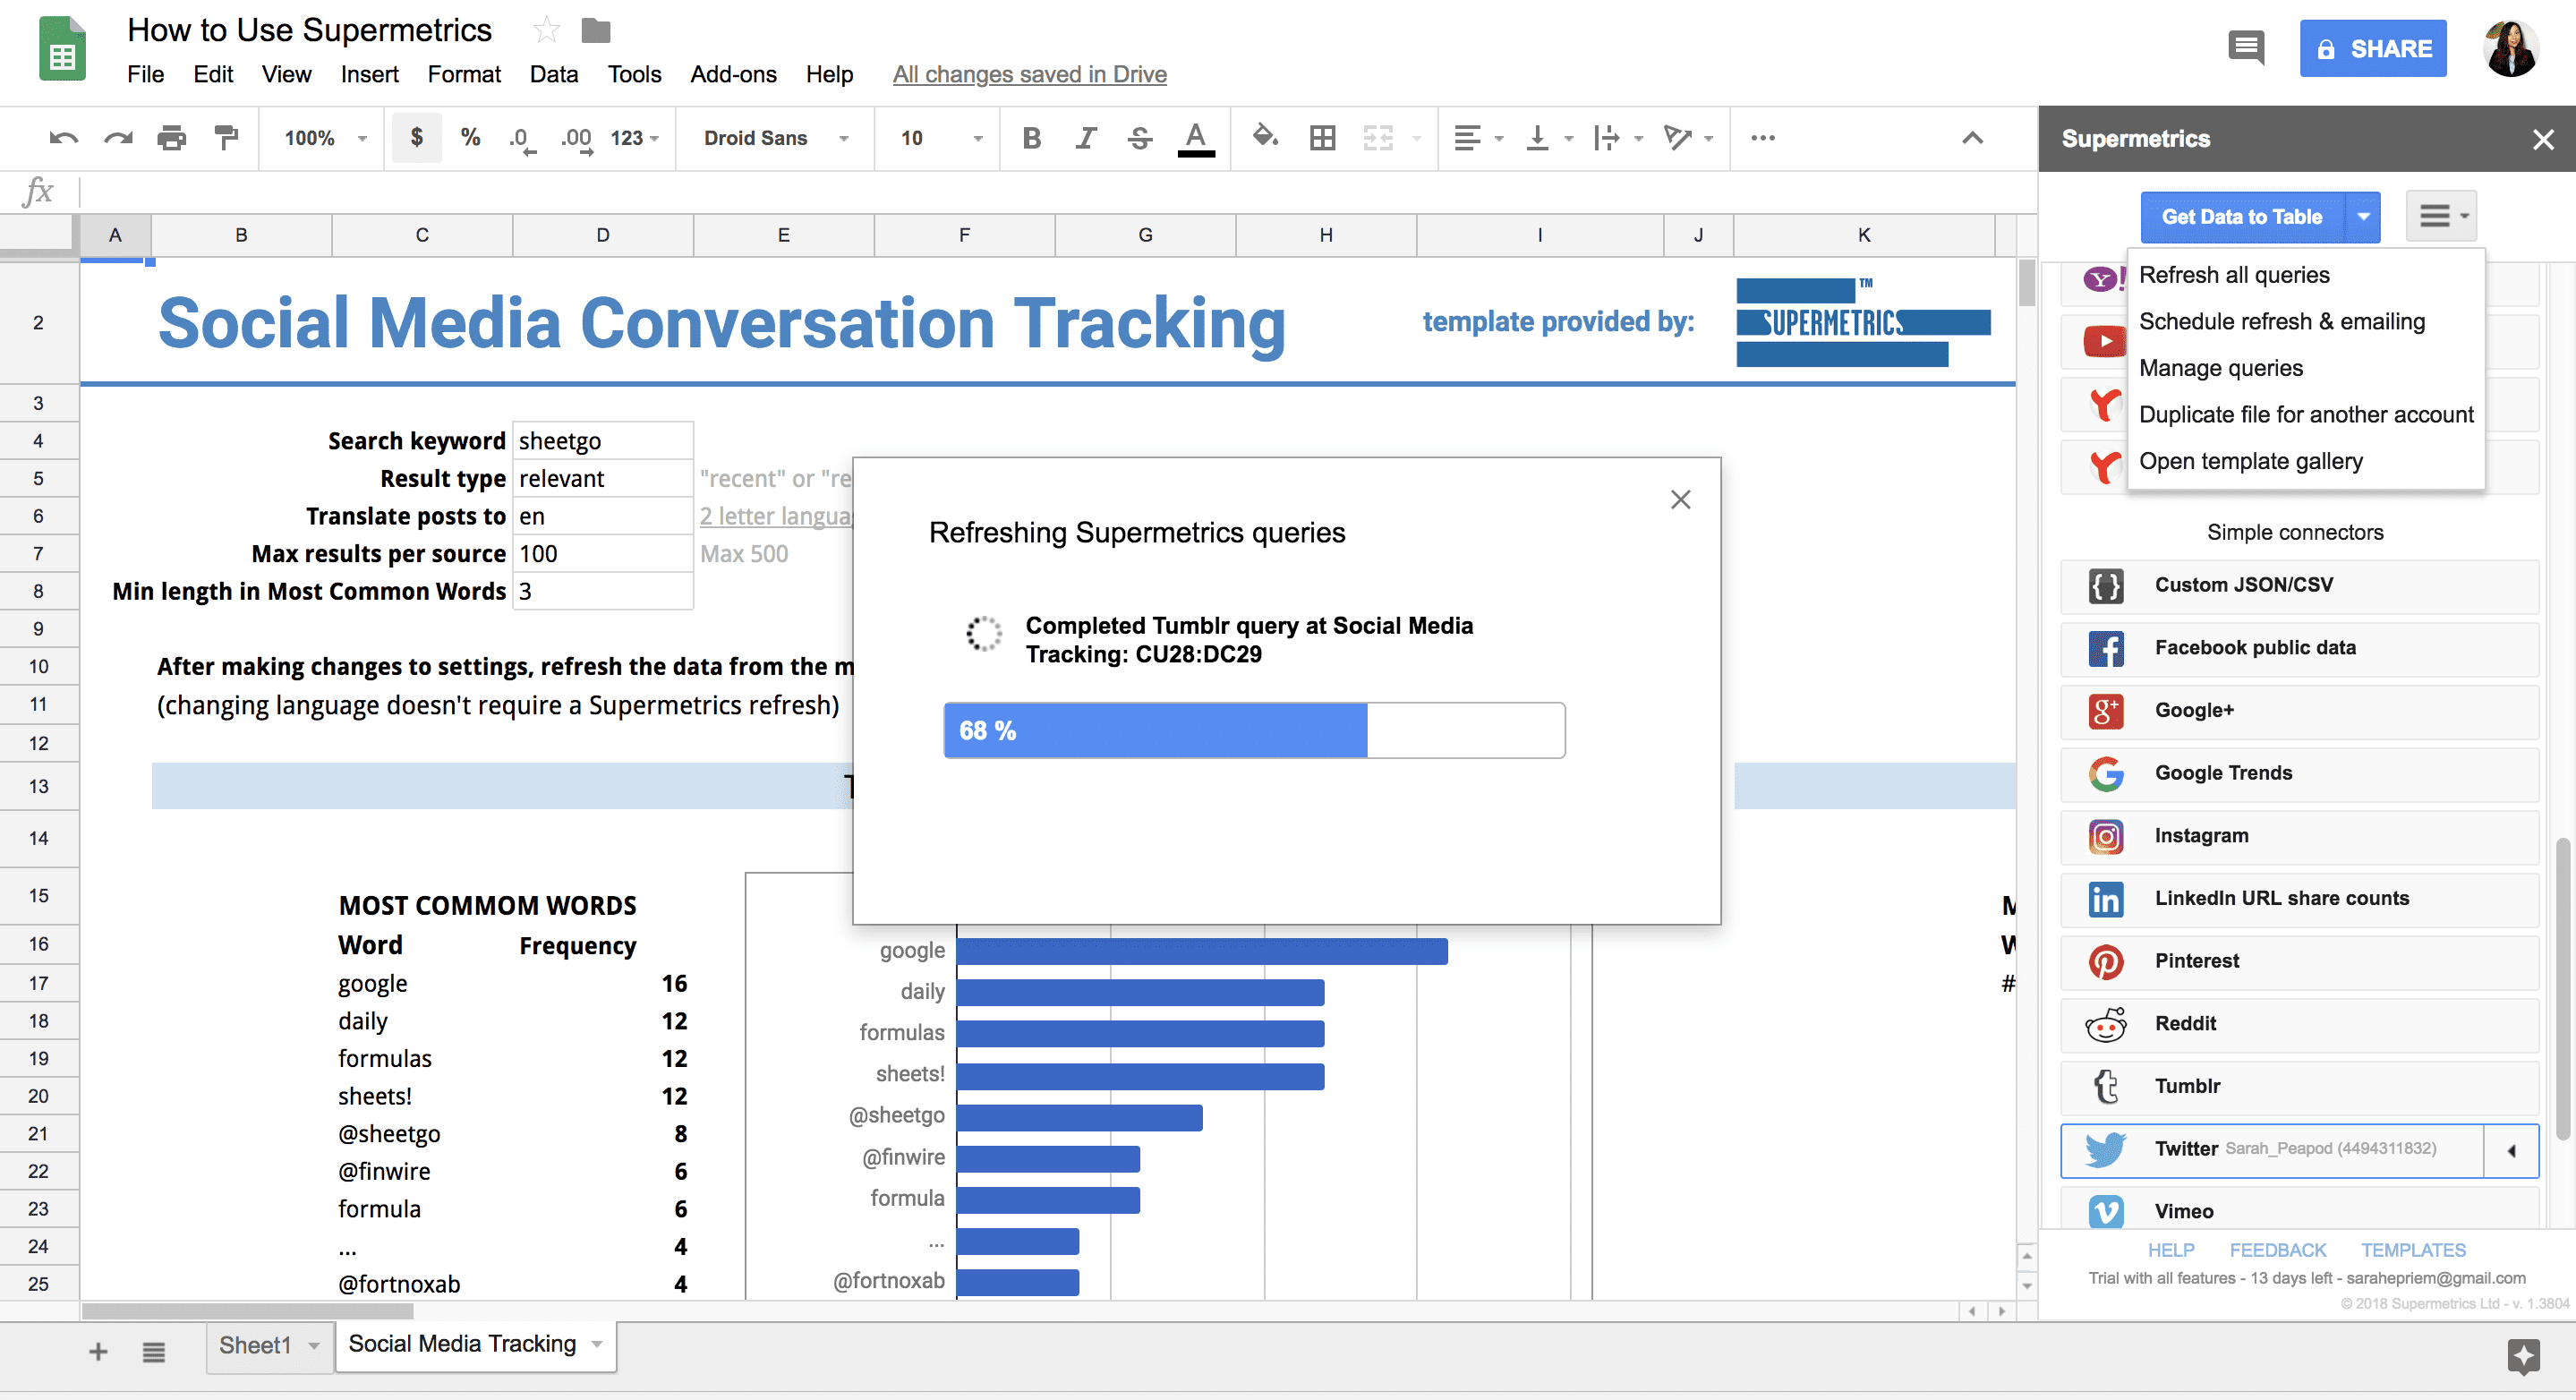 Social Media Conversation Tracking in Google Sheets